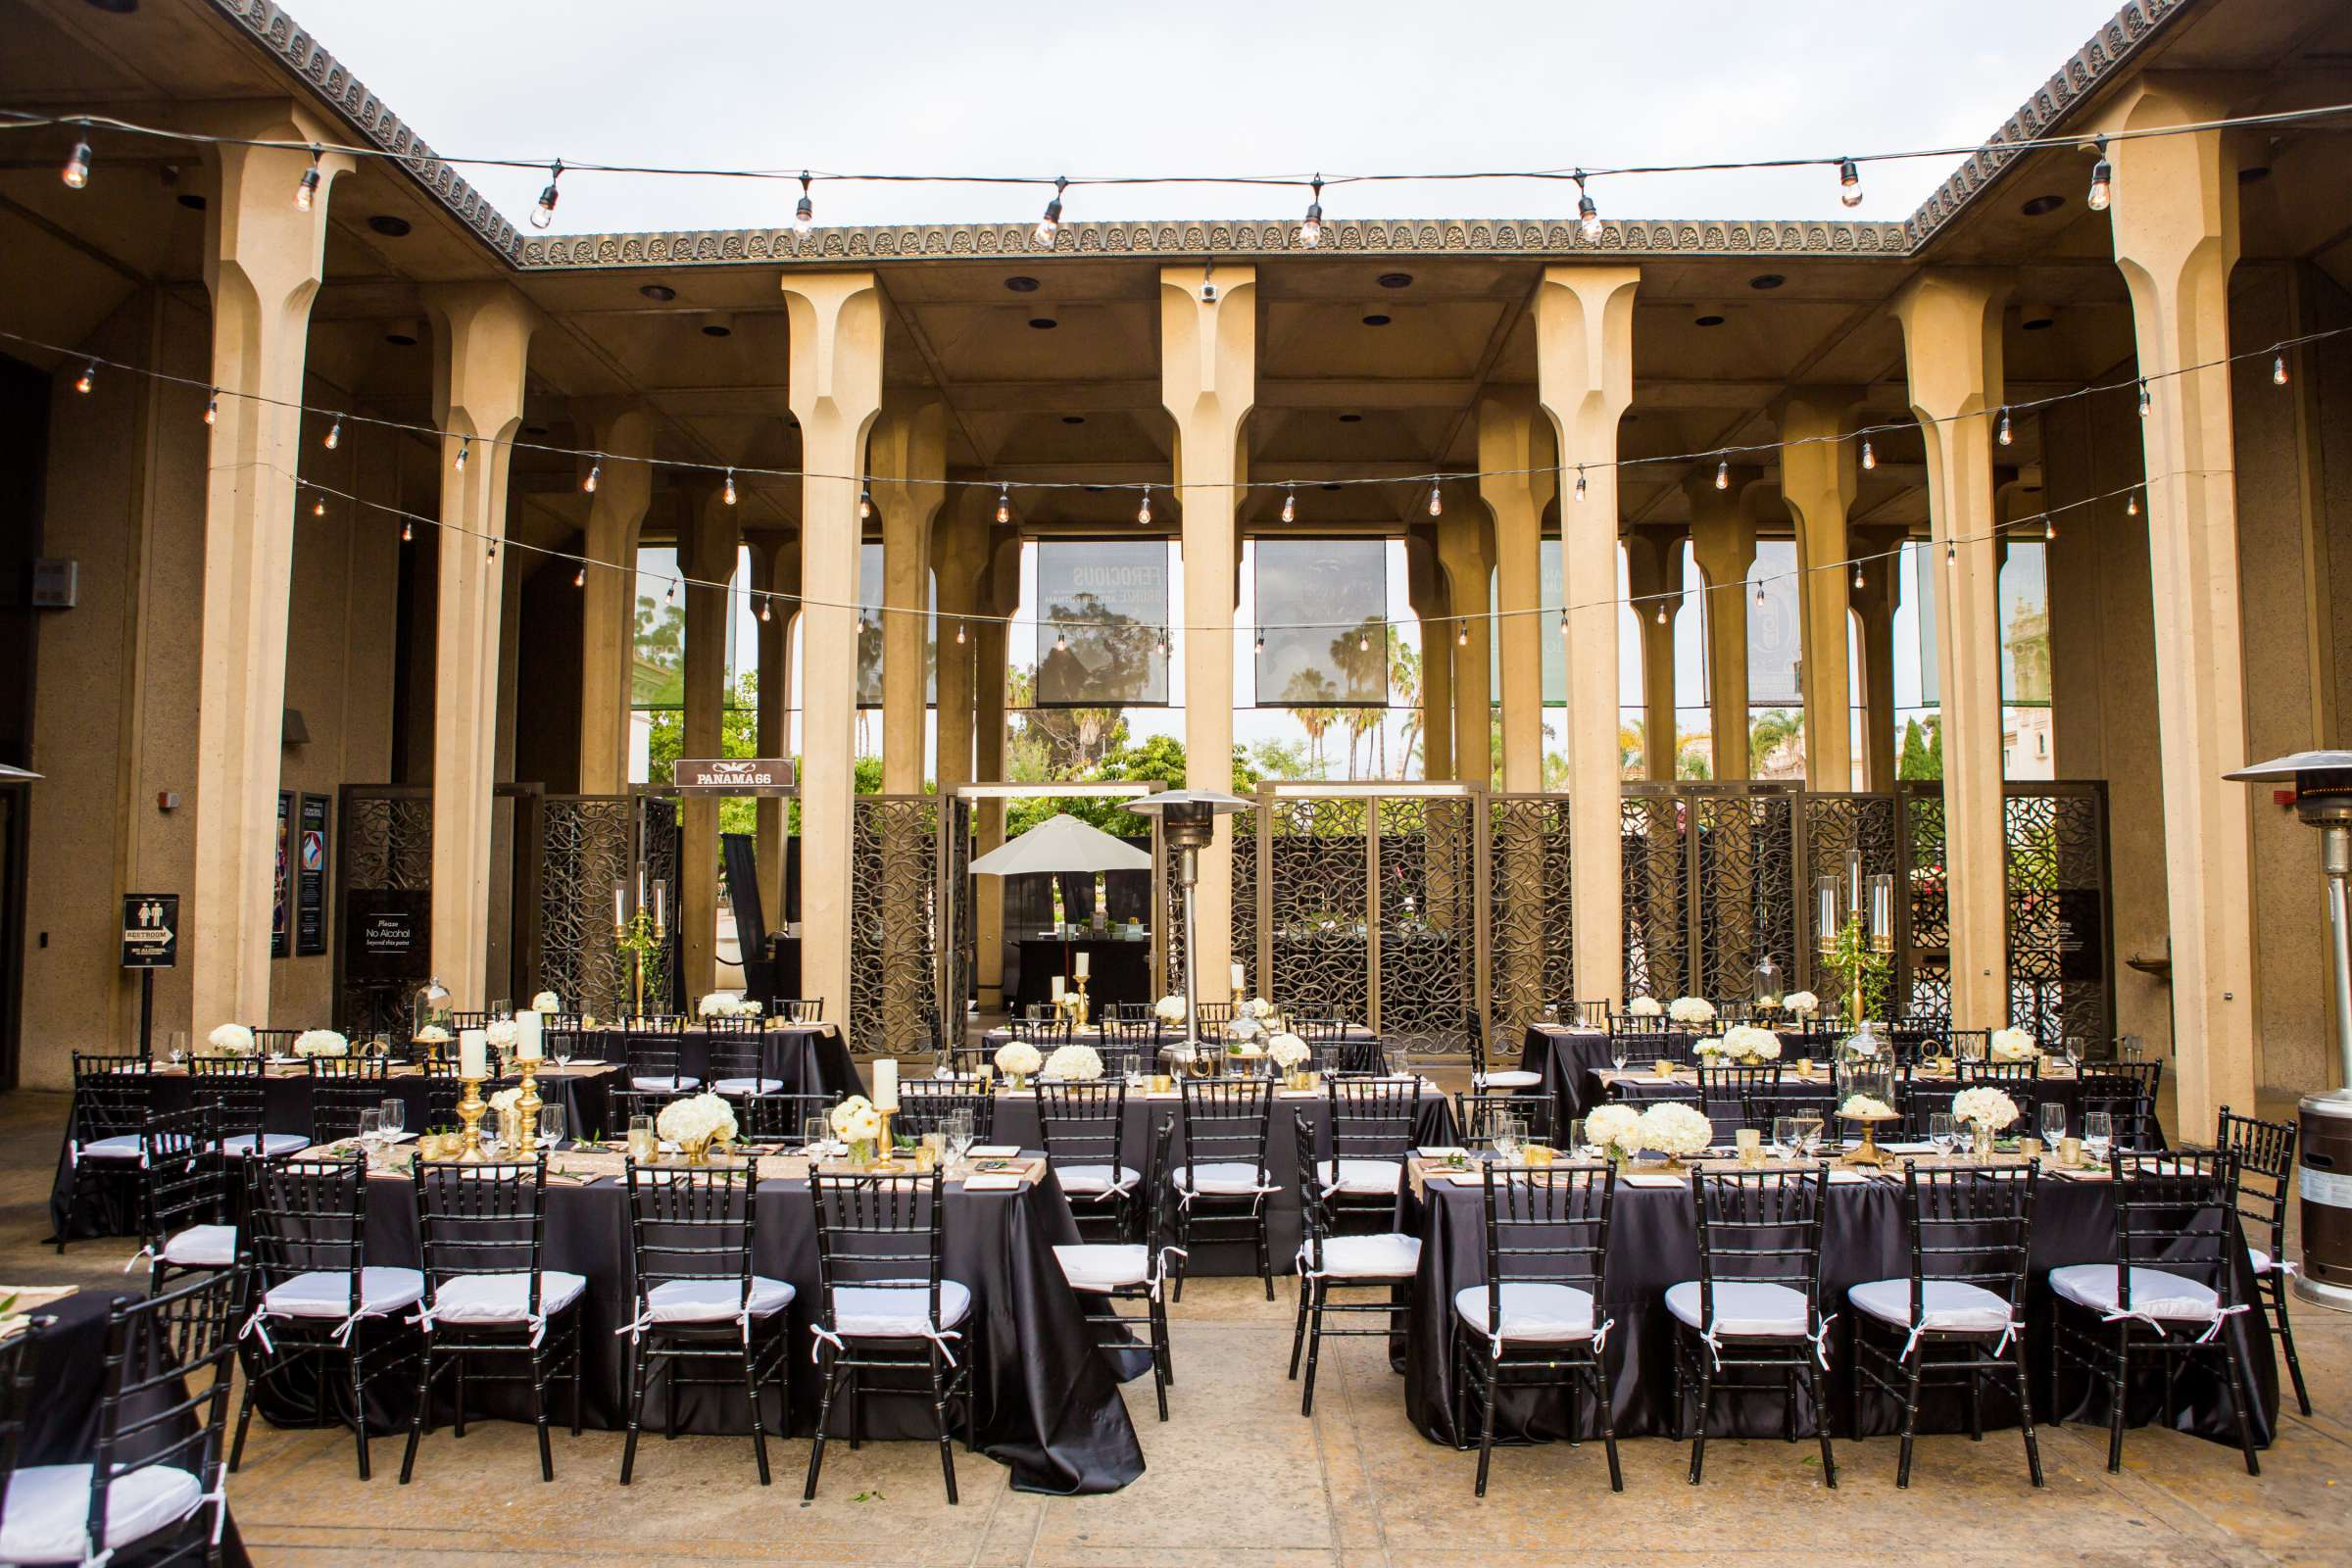 San Diego Museum of Art Wedding coordinated by First Comes Love Weddings & Events, Ruthie and Larry Wedding Photo #236901 by True Photography